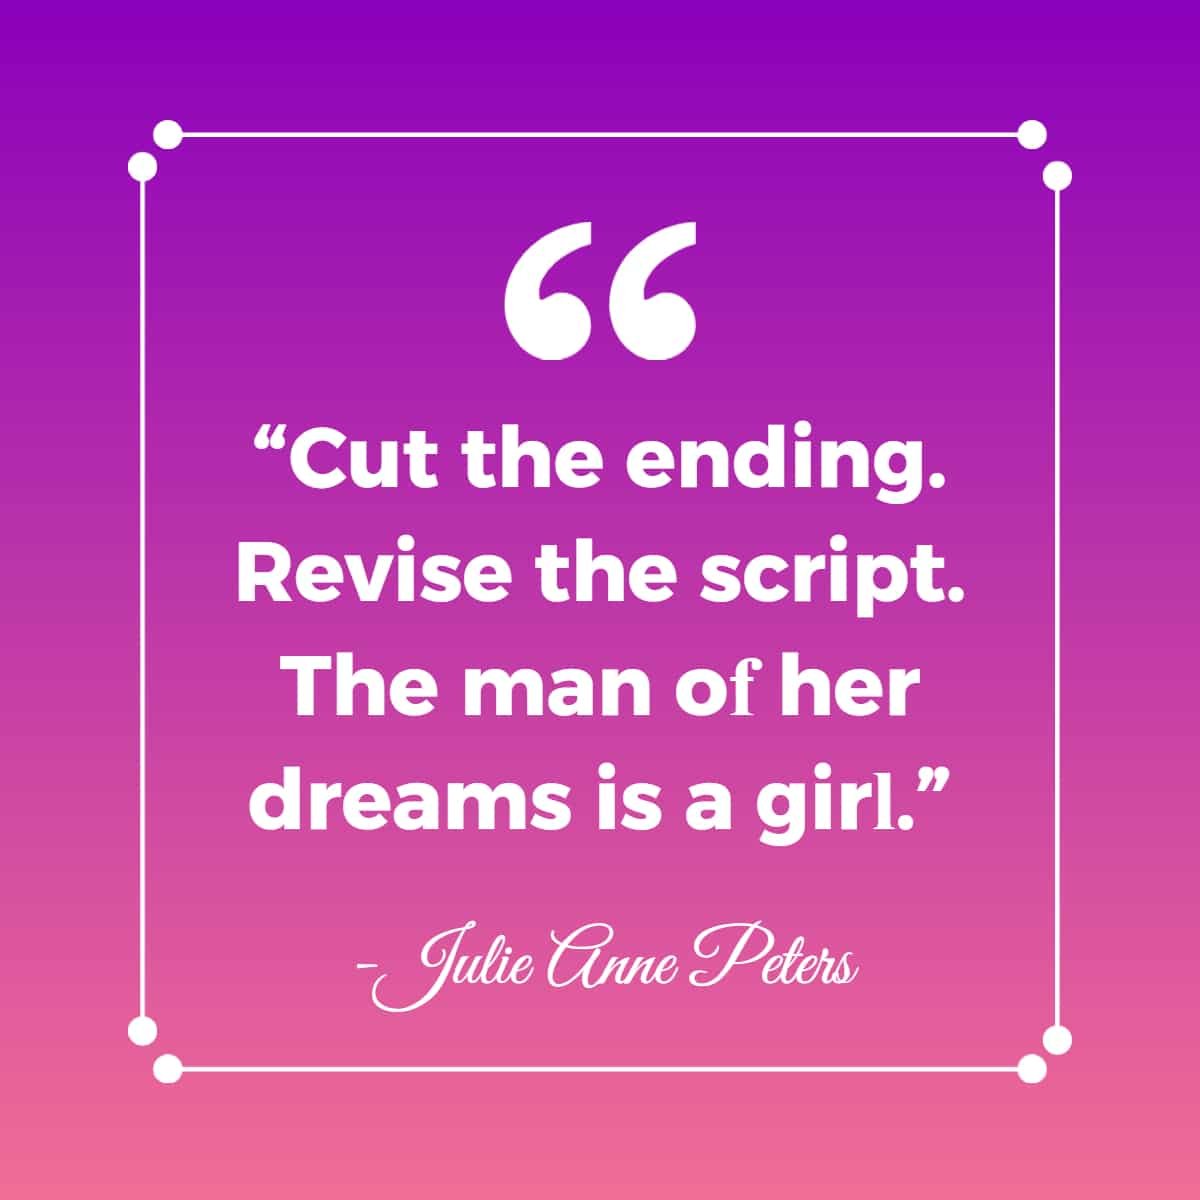 lesbian love quotes by Julie Anne Peters,